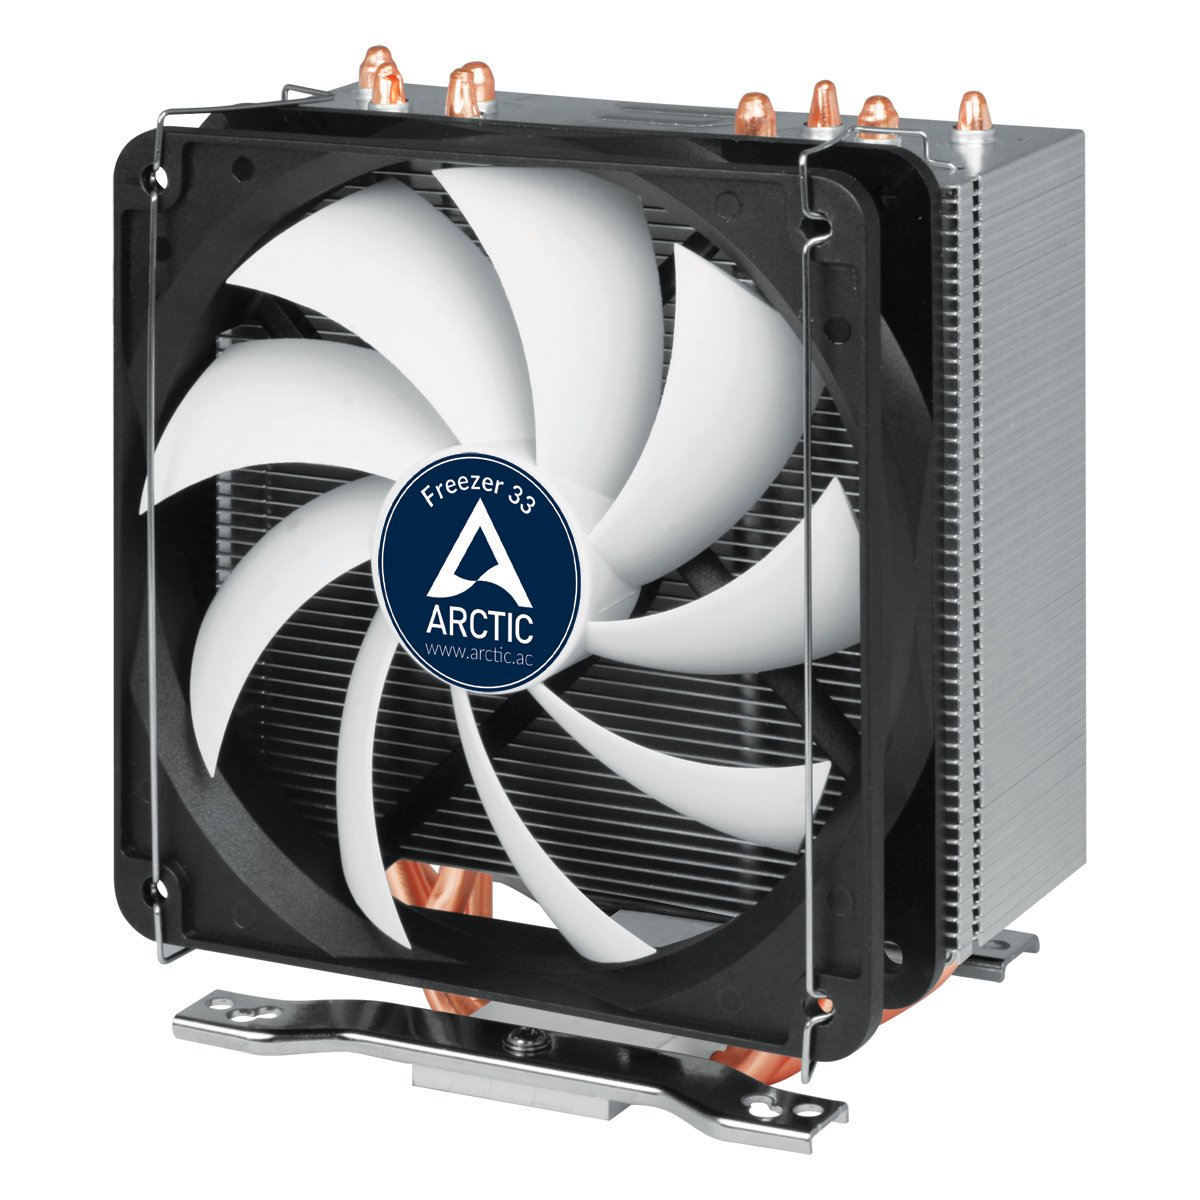 Arctic Freezer 33 - Semi Passive Tower CPU Cooler for Intel 115X/2011-3 and AMD AM4 with 120 mm PWM Fan, Silent High Performance Cooler Up to 150W TDP - Grey/Black by ARCTIC